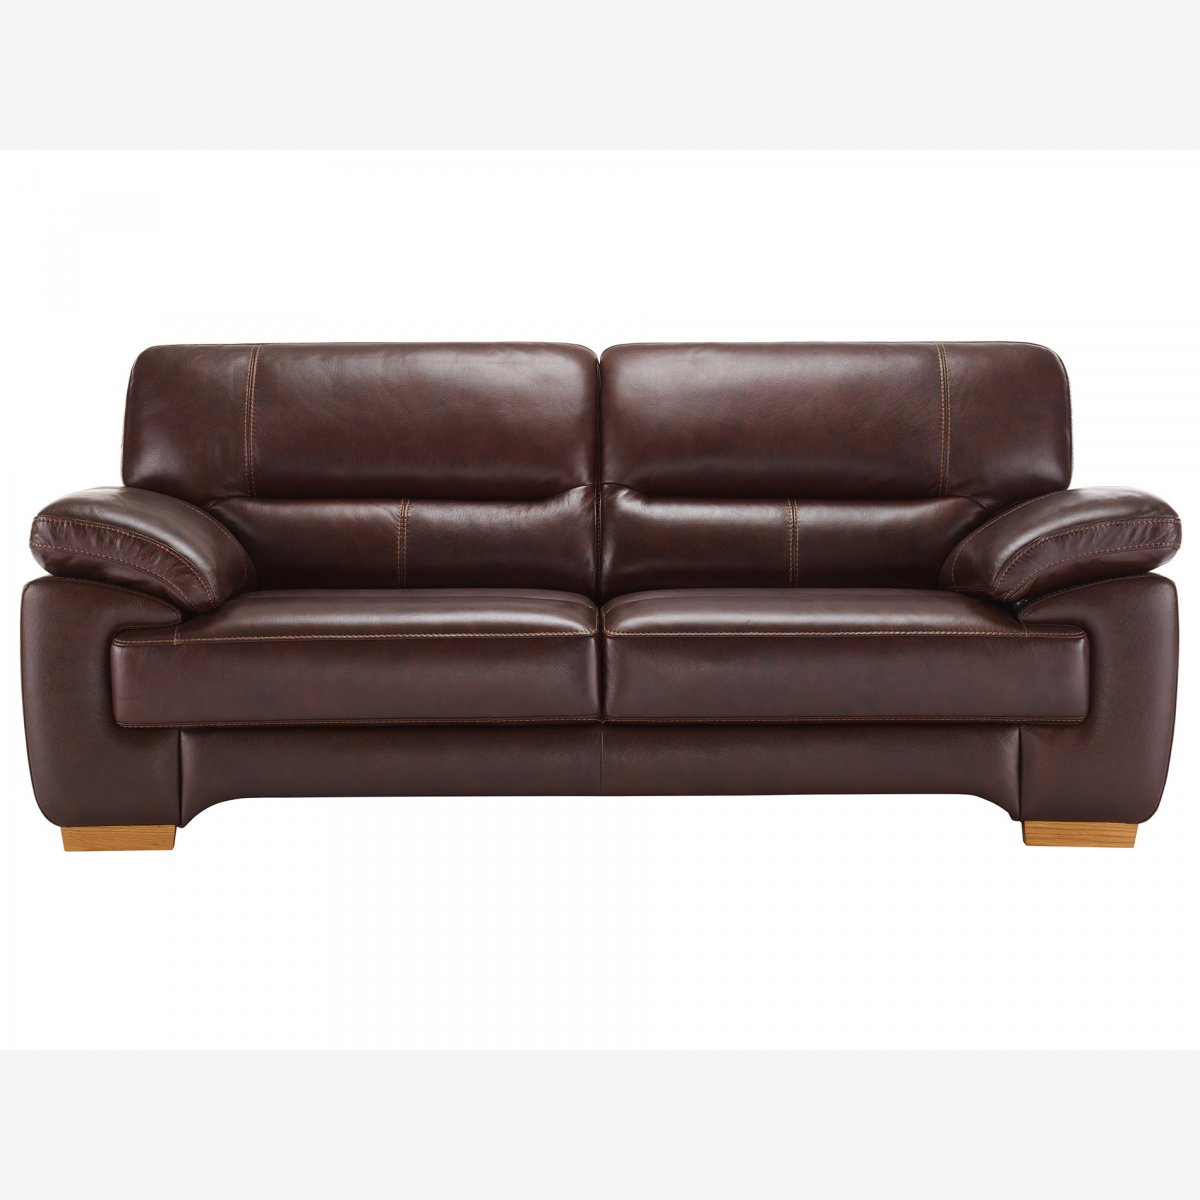 distressed leather armchair uk steelcase office chair canada clayton 3 seater sofa in brown oak furniture land